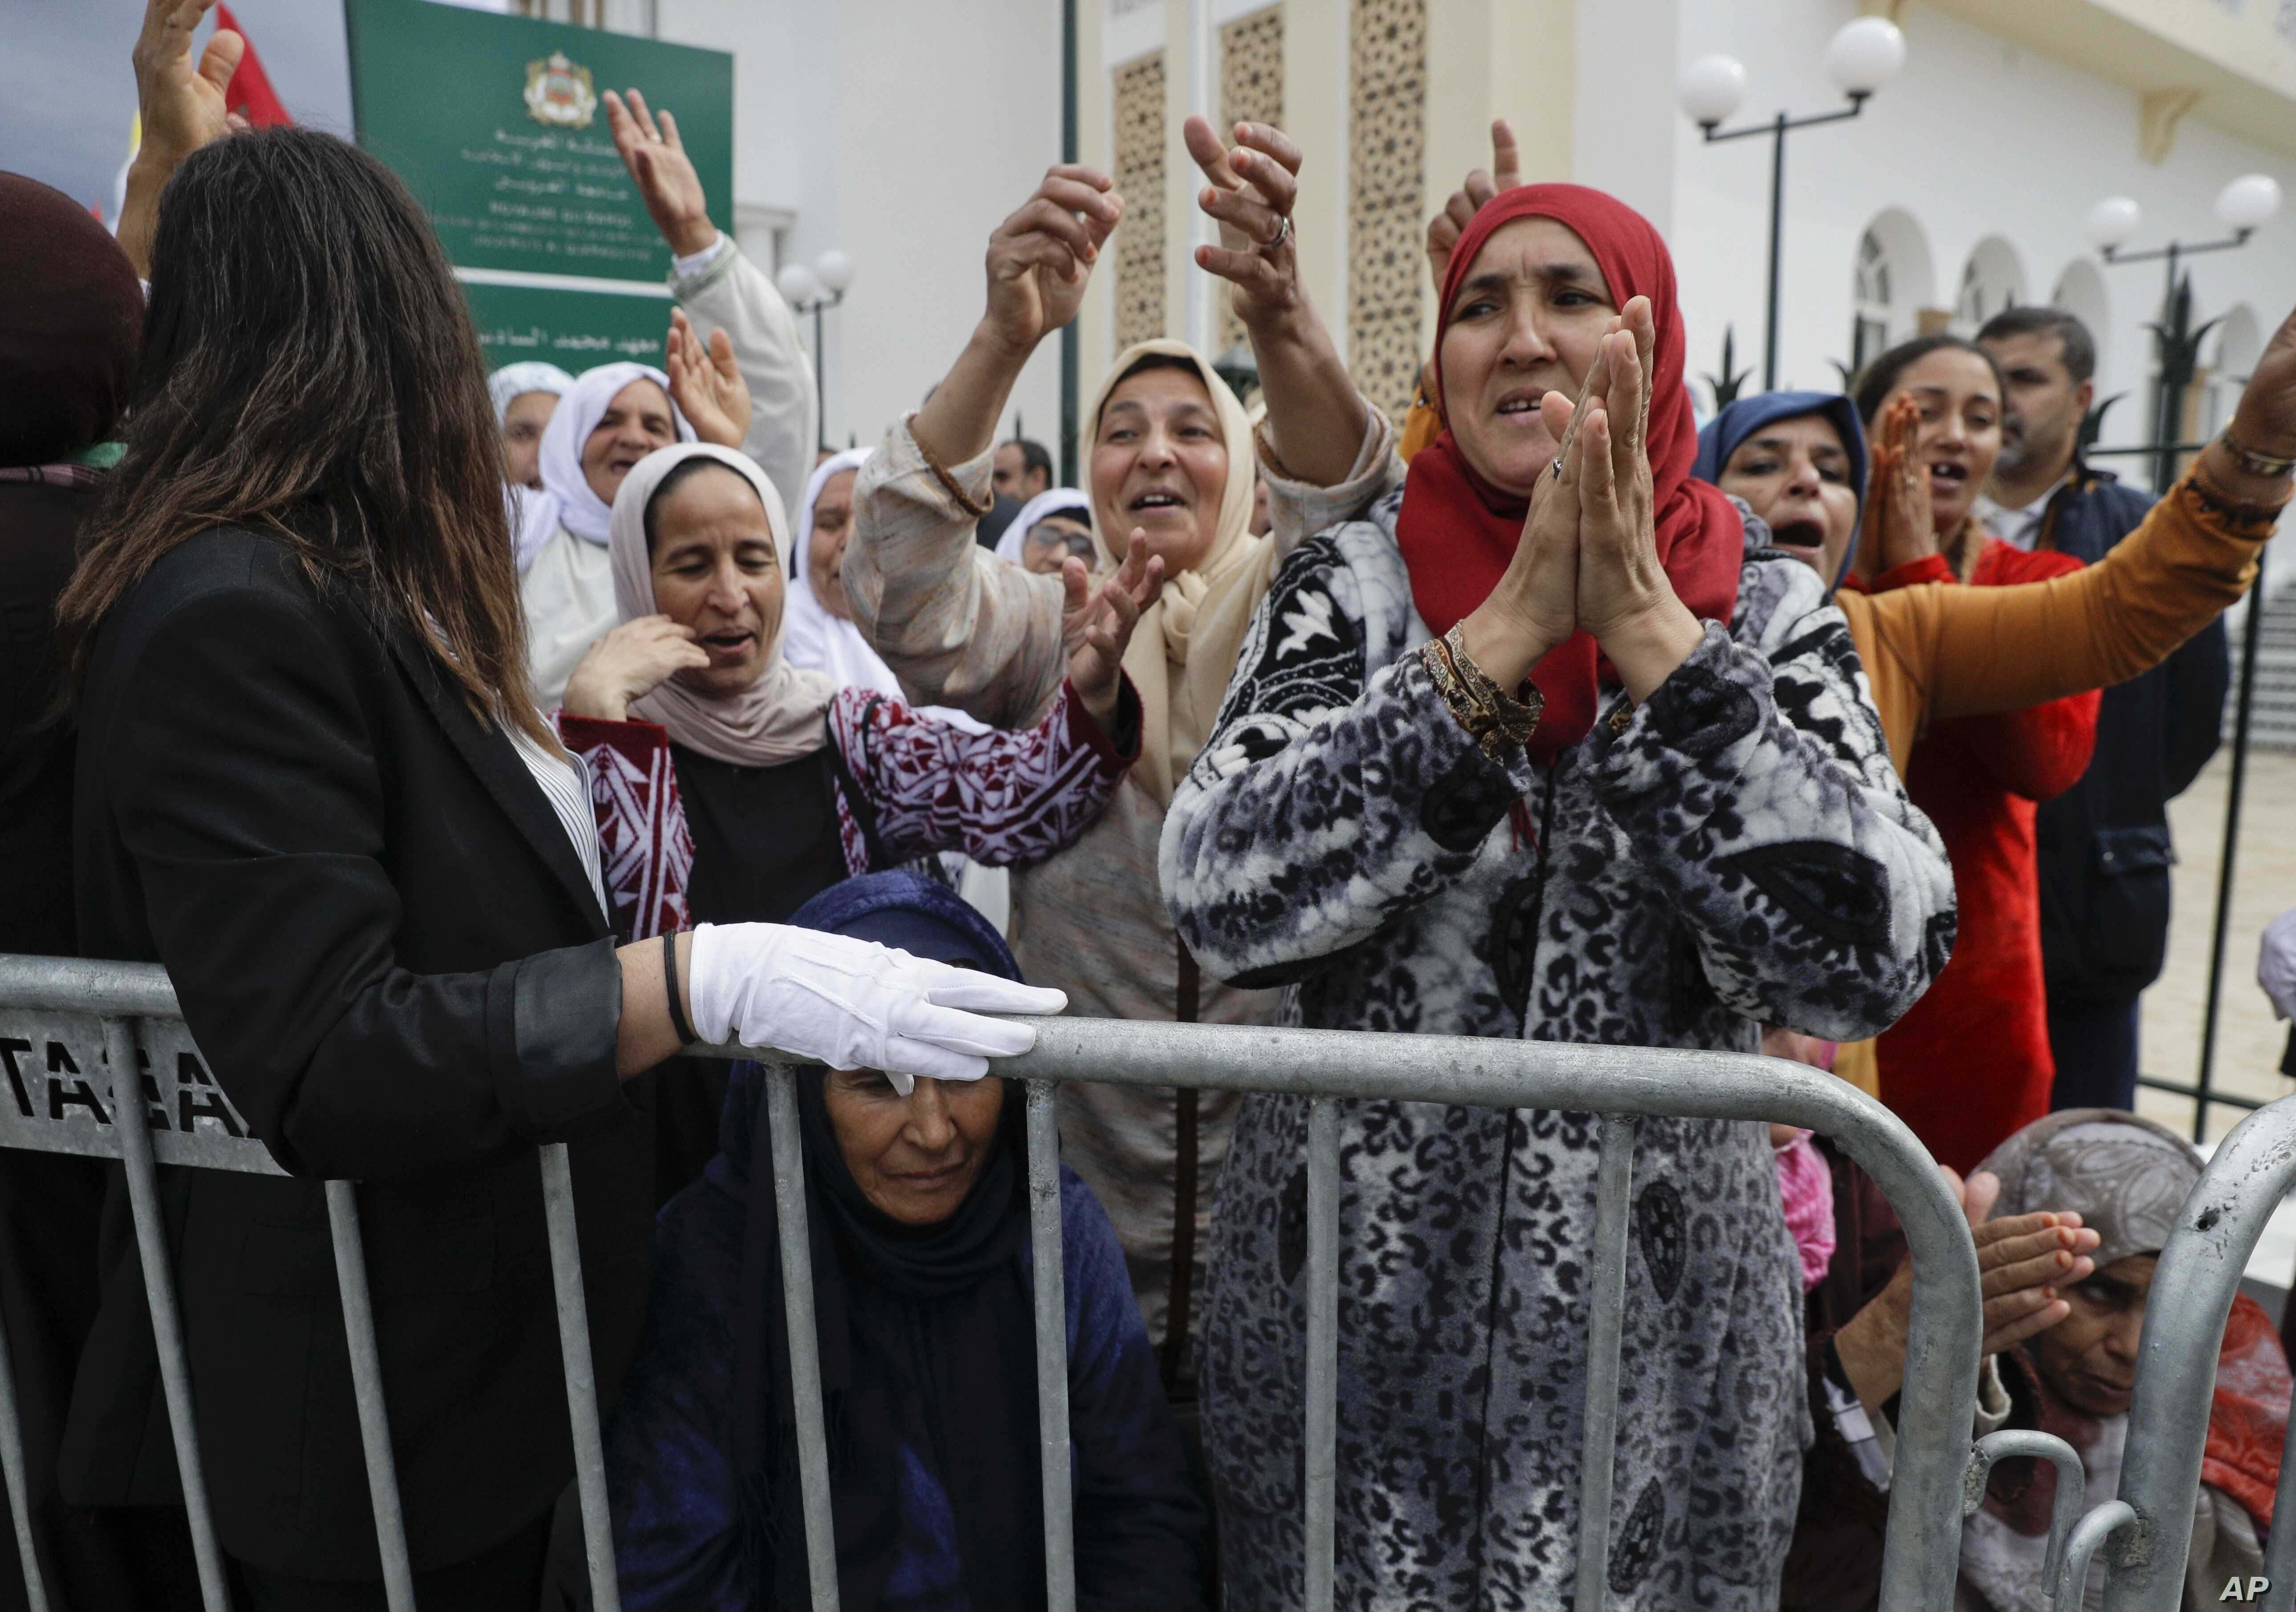 Women cheer as they wait for Pope Francis to arrive at the Mohammed VI Institute, a school of learning for imams, in Rabat, Morocco, March 30, 2019.